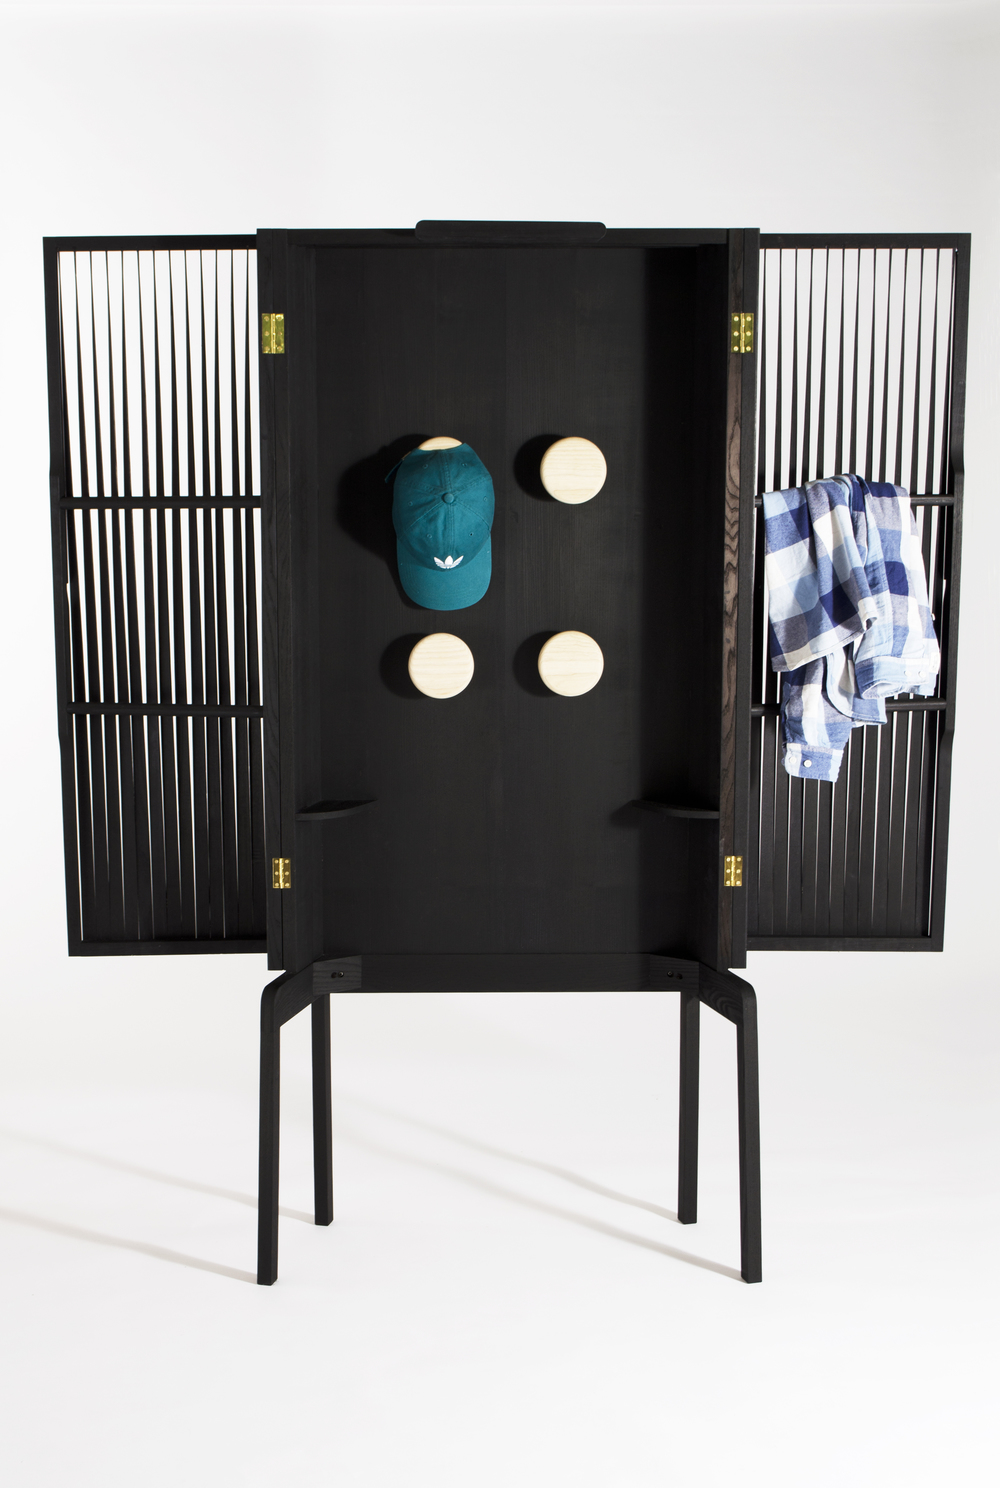 Cabinet by Charlie Styrbjörn Nilsson in collaboration with Olle K Engberg and Ludwig Berg (9).jpg